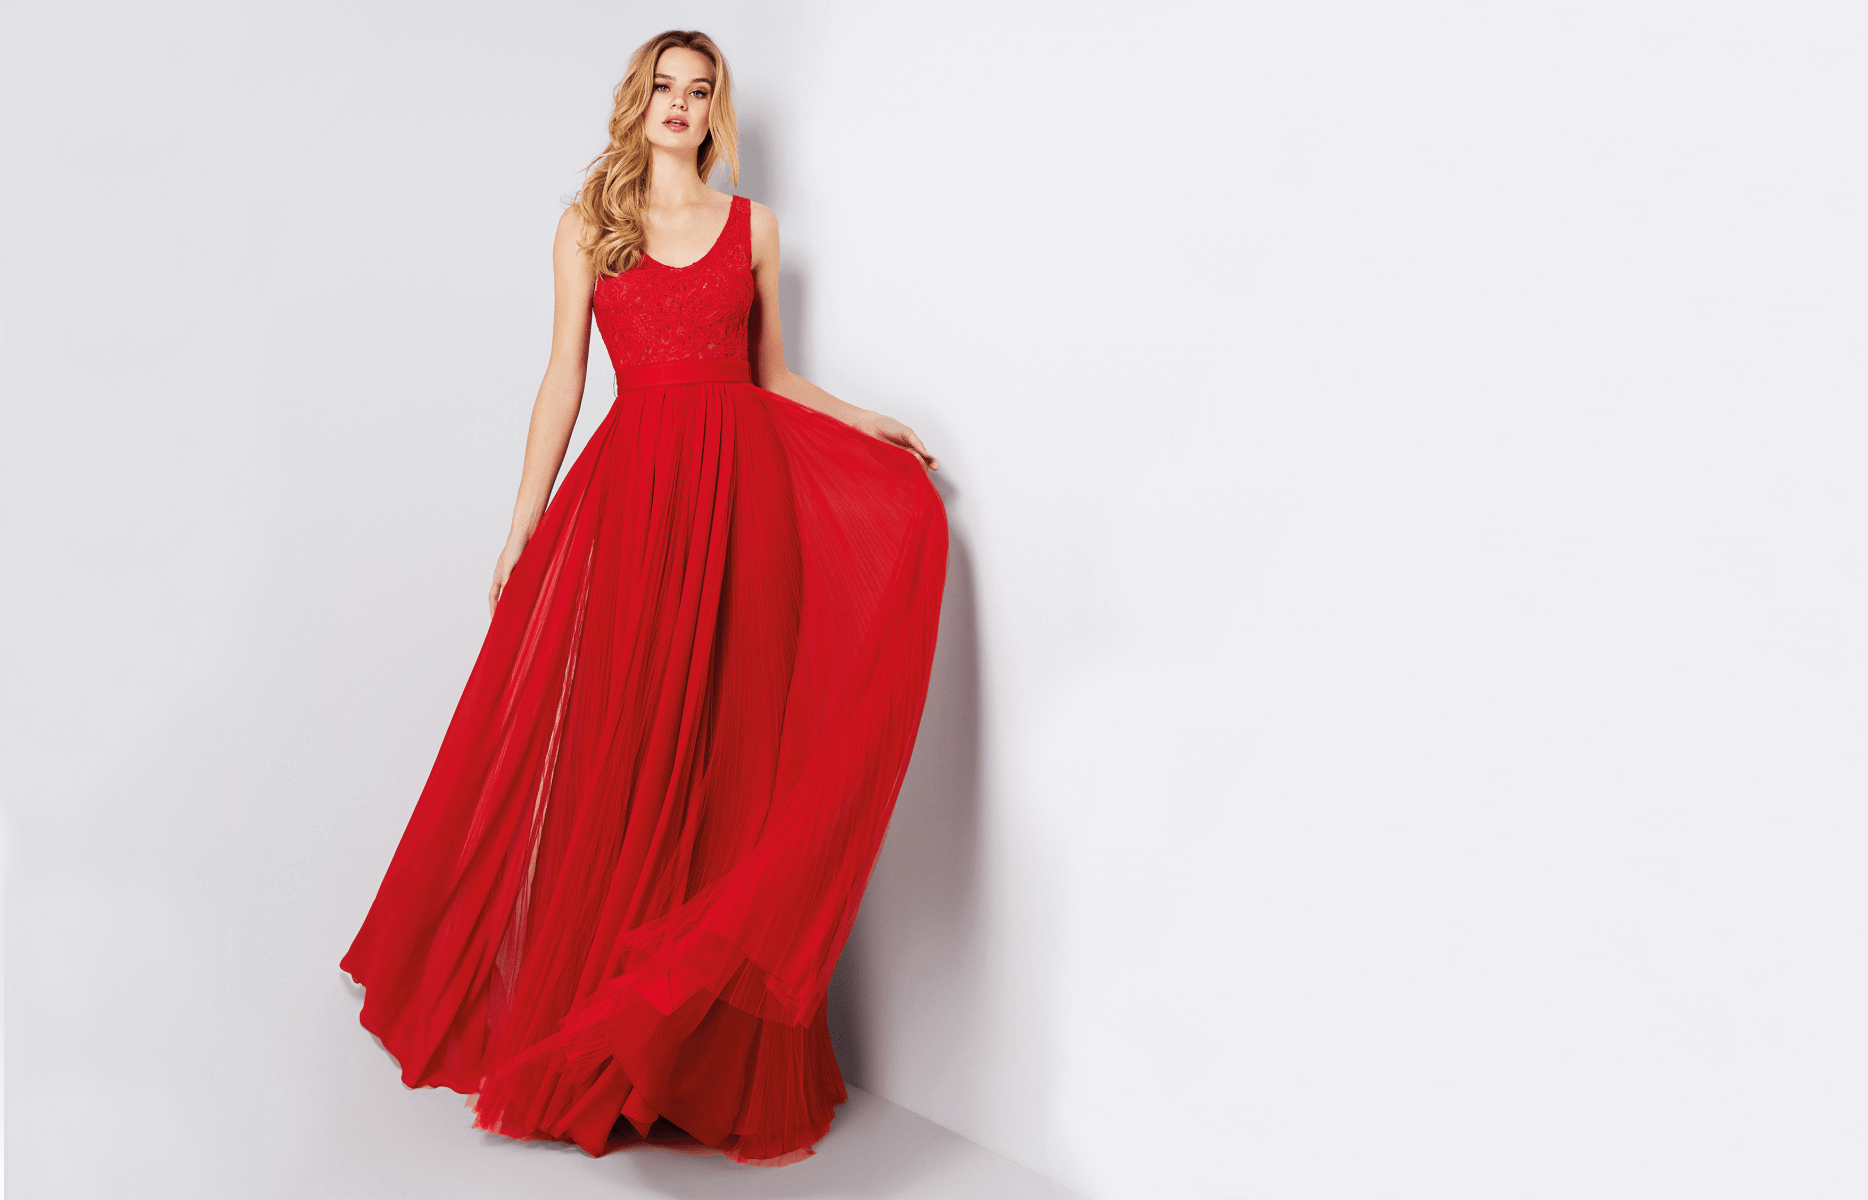 Prom dresses Los Angeles that match your personality - Fashion ...